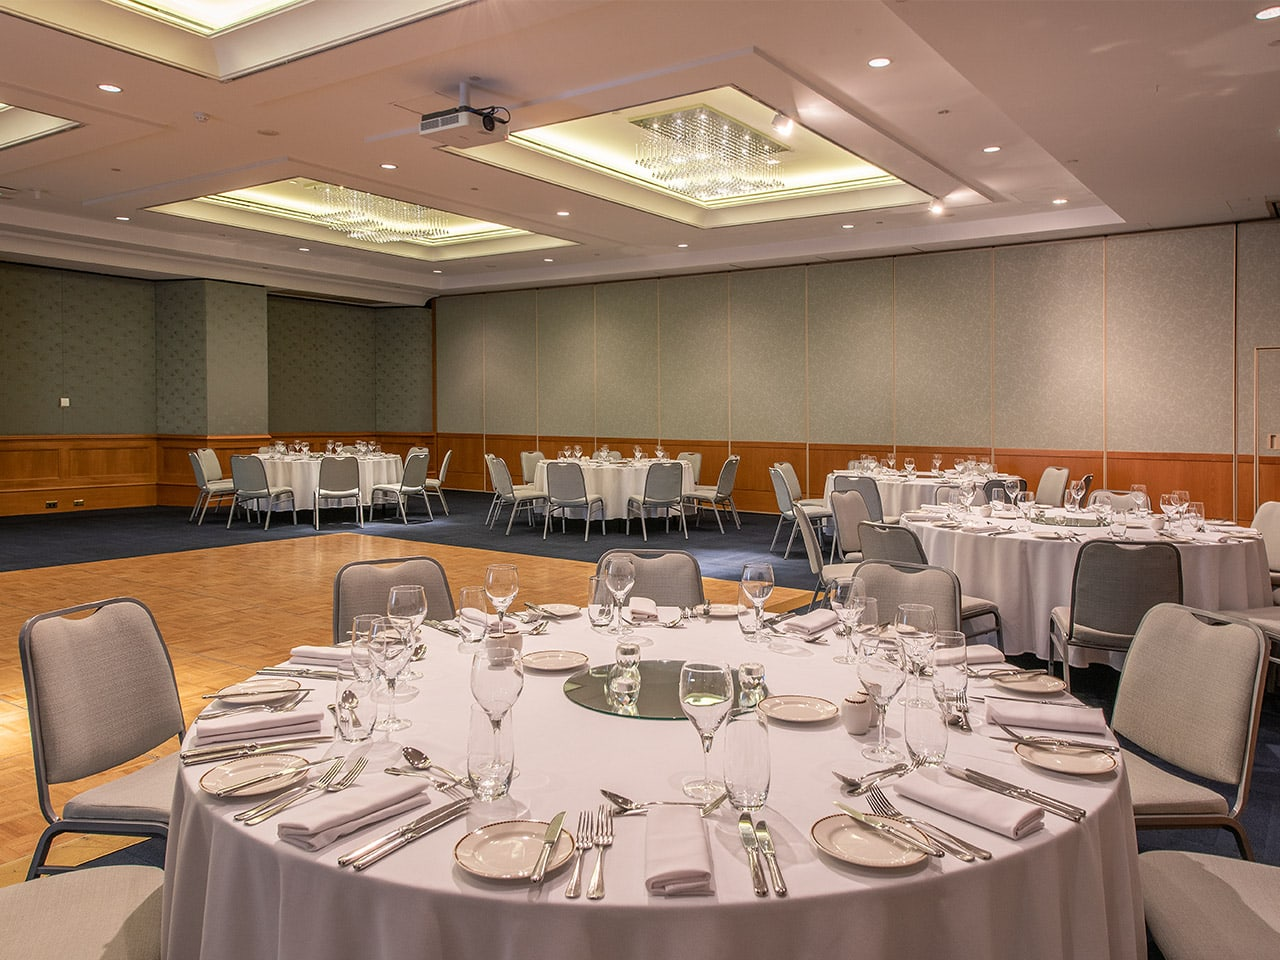 Banquet style function room